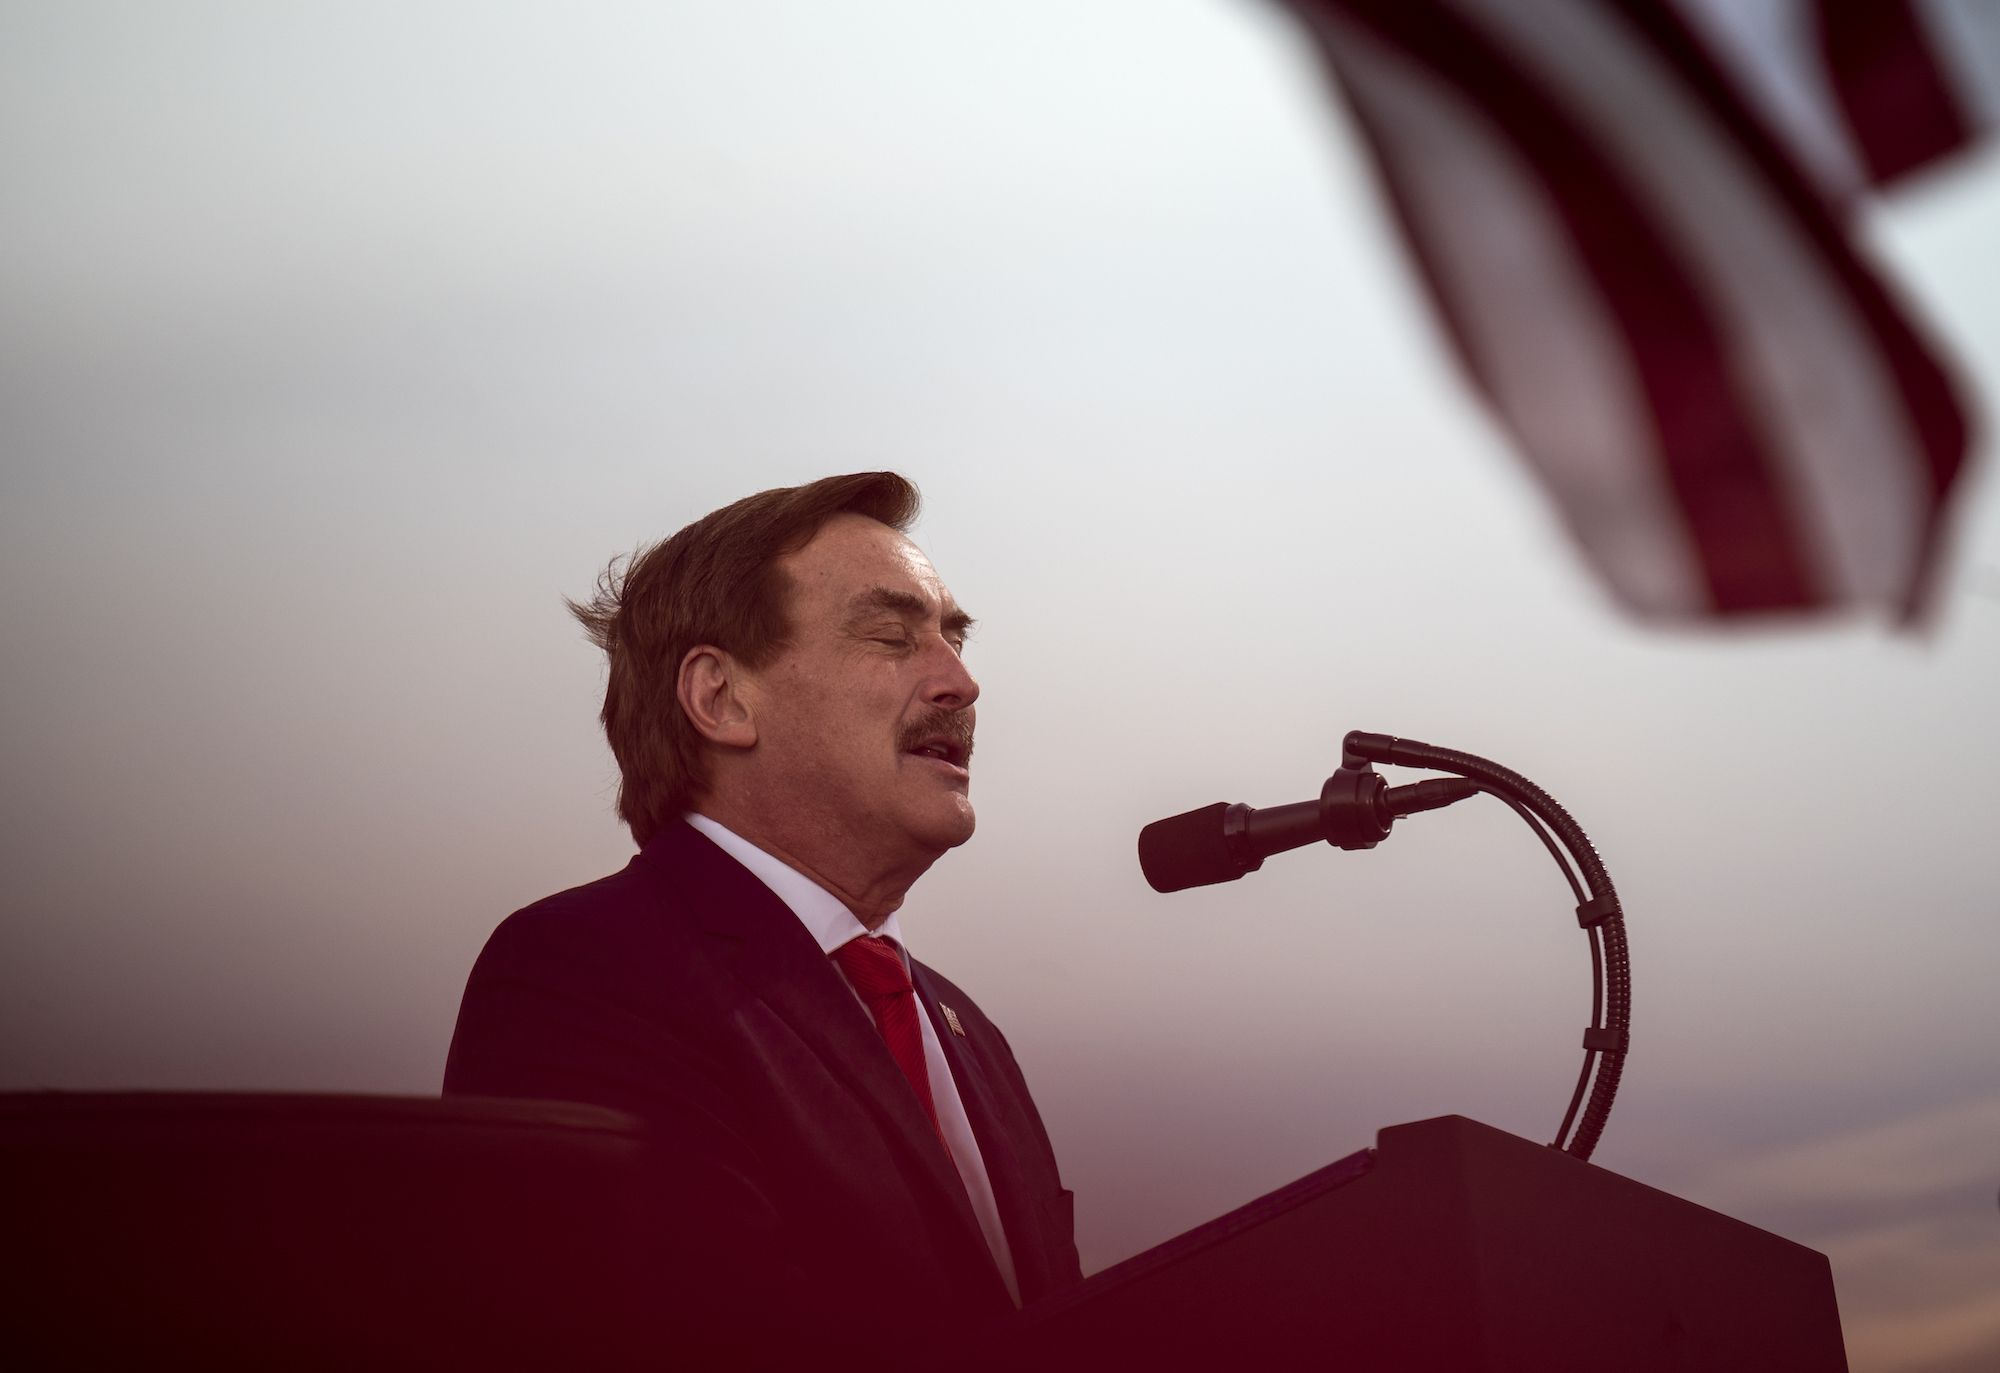 Mypillow Guy Mike Lindell Pushes Trump Election Fraud Conspiracies While Selling Pillows